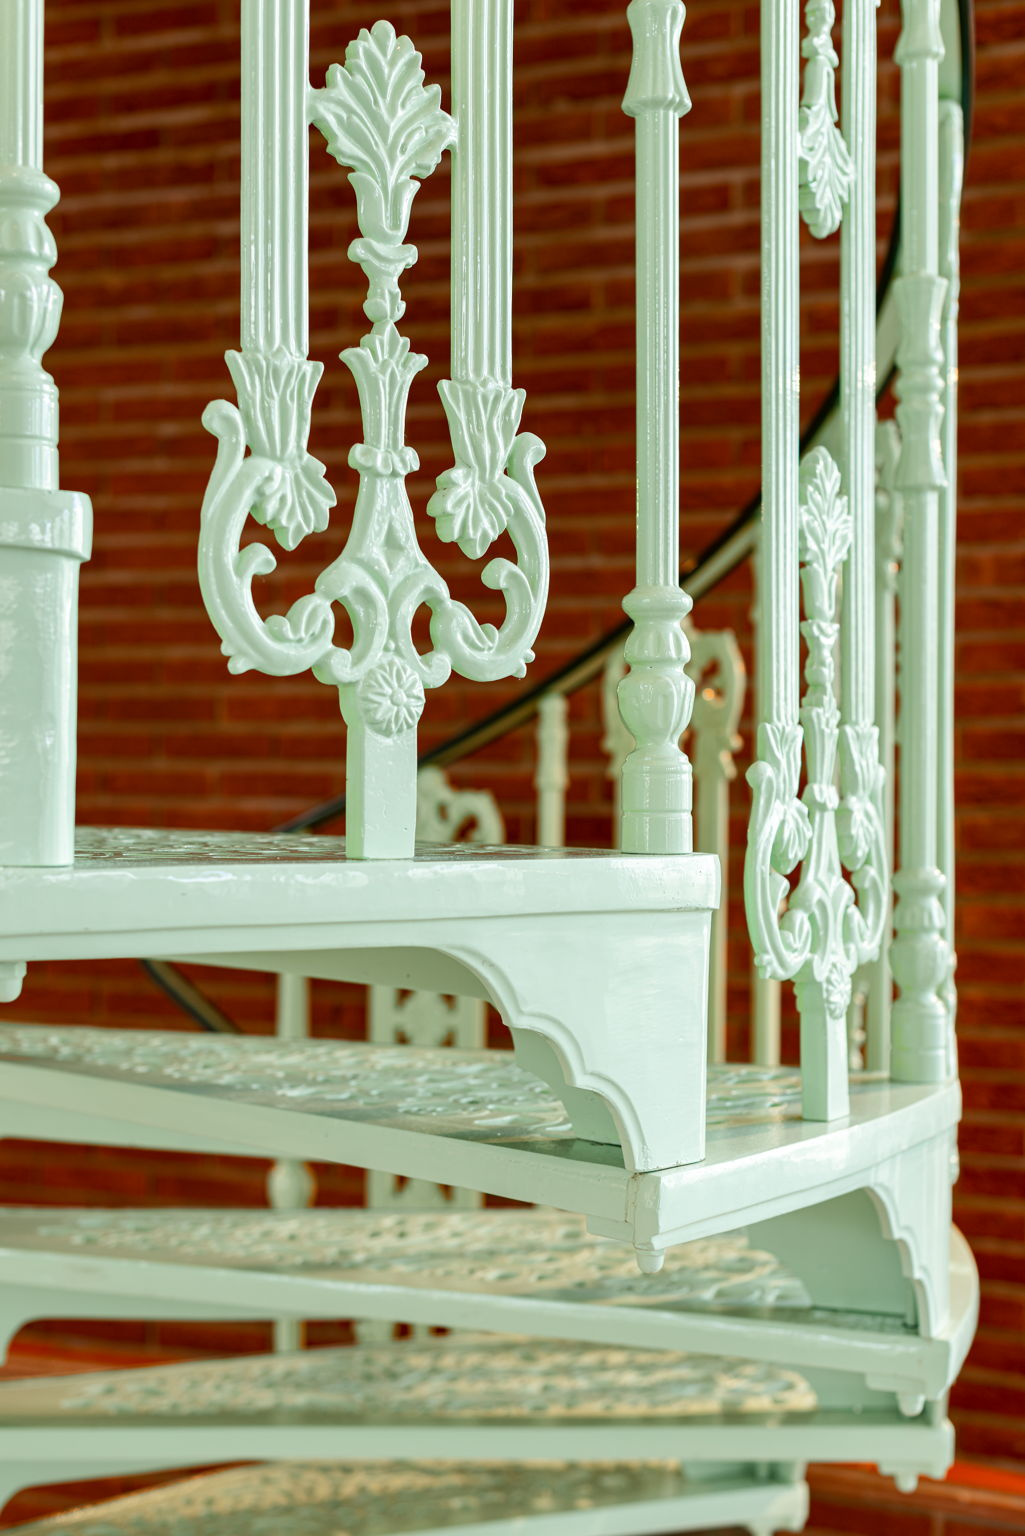 Two Victorian Spiral Staircases